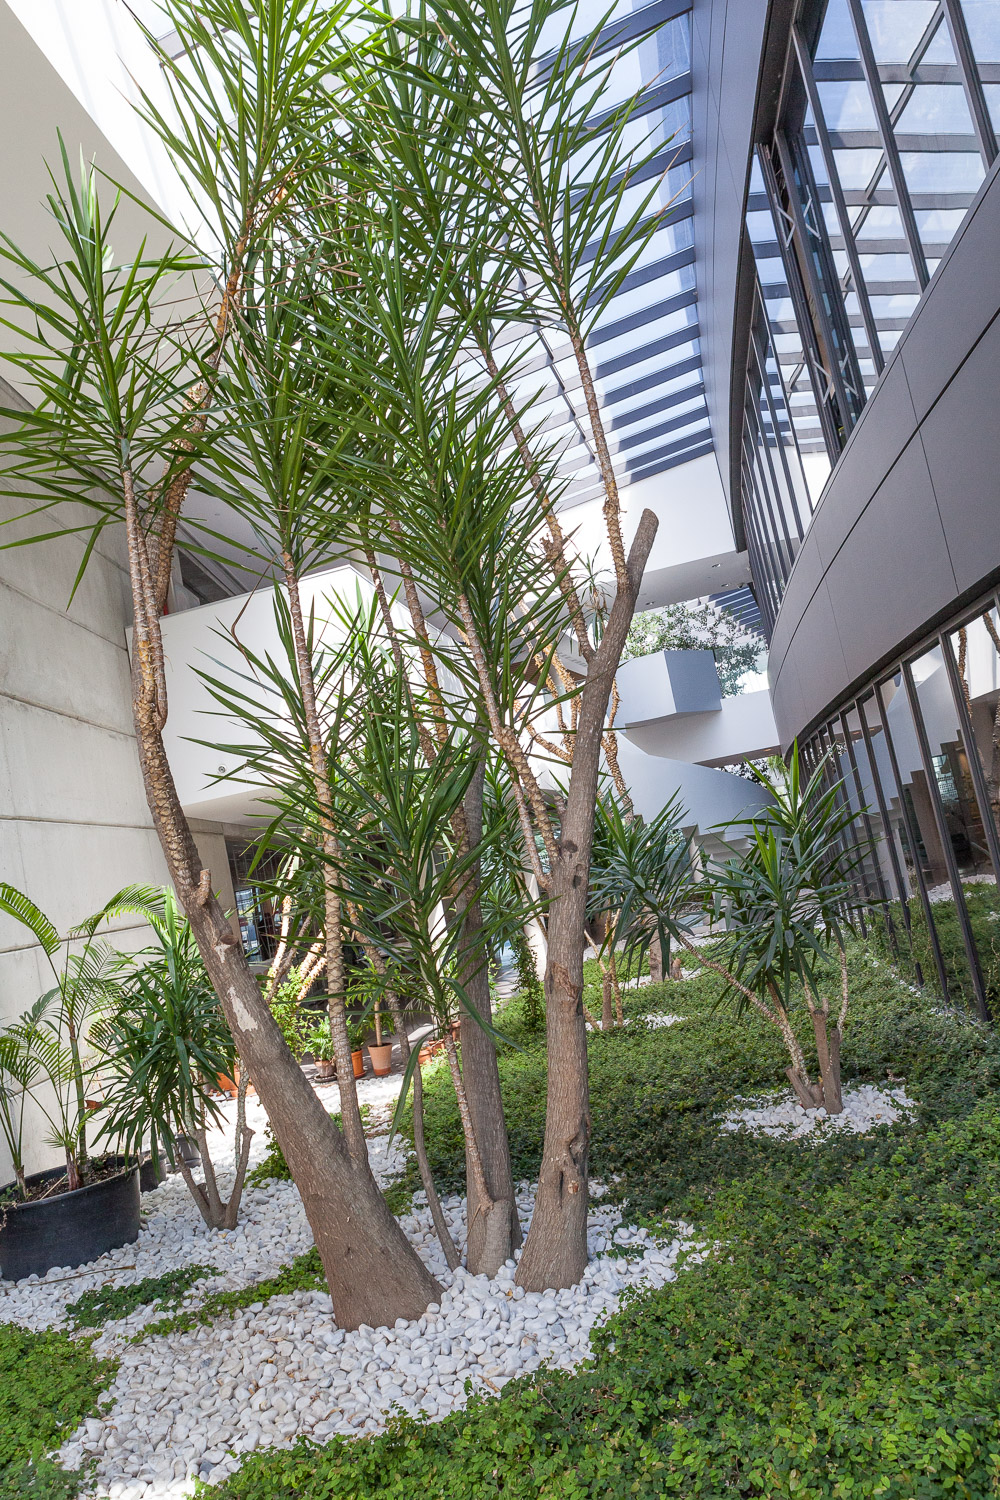 One of the indoor gardens at Actiu